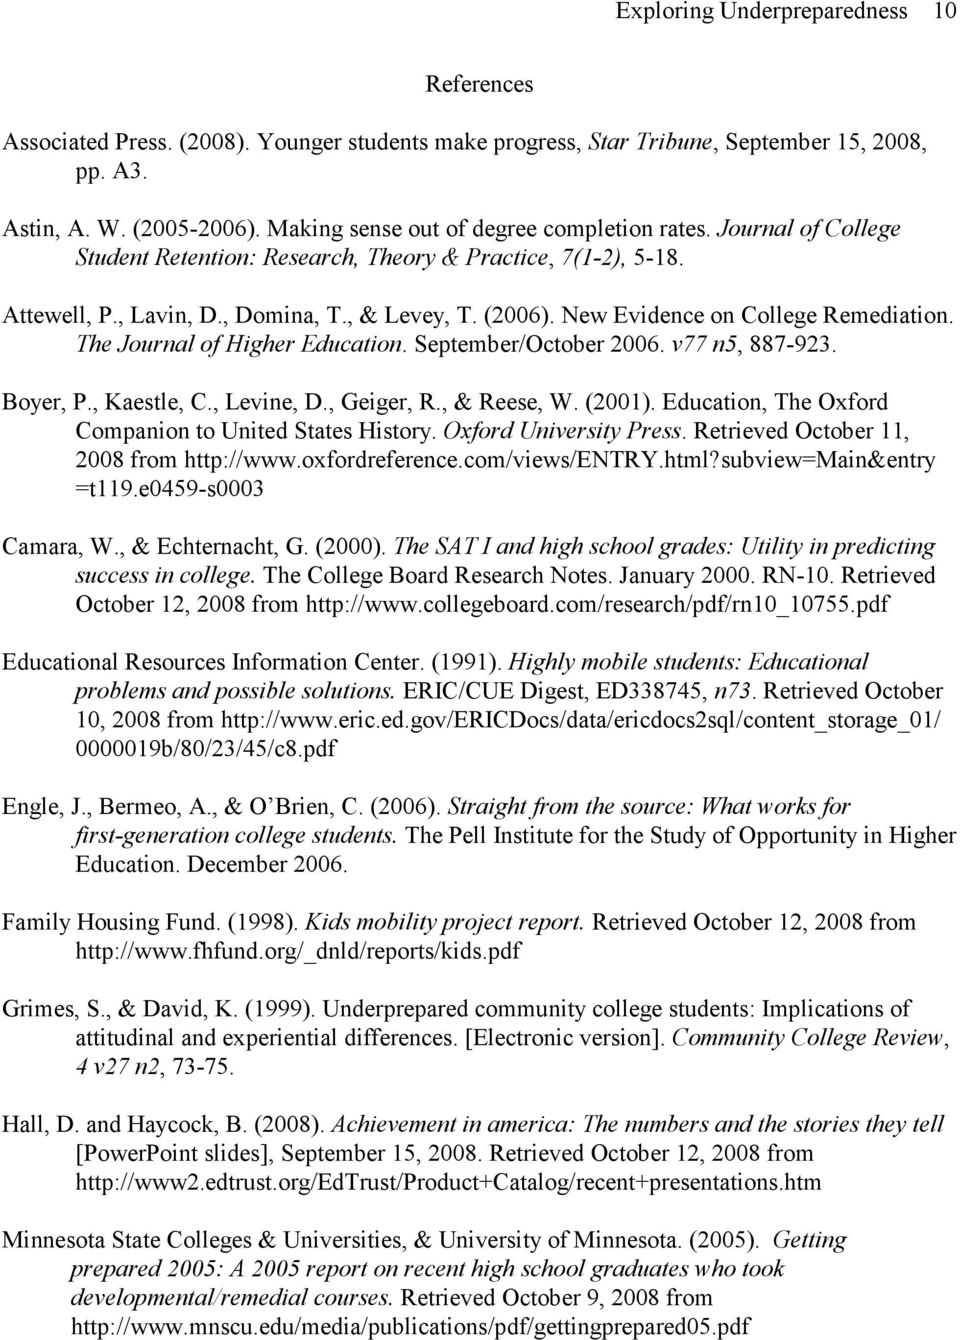 New Evidence on College Remediation. The Journal of Higher Education. September/October 2006. v77 n5, 887-923. Boyer, P., Kaestle, C., Levine, D., Geiger, R., & Reese, W. (2001).